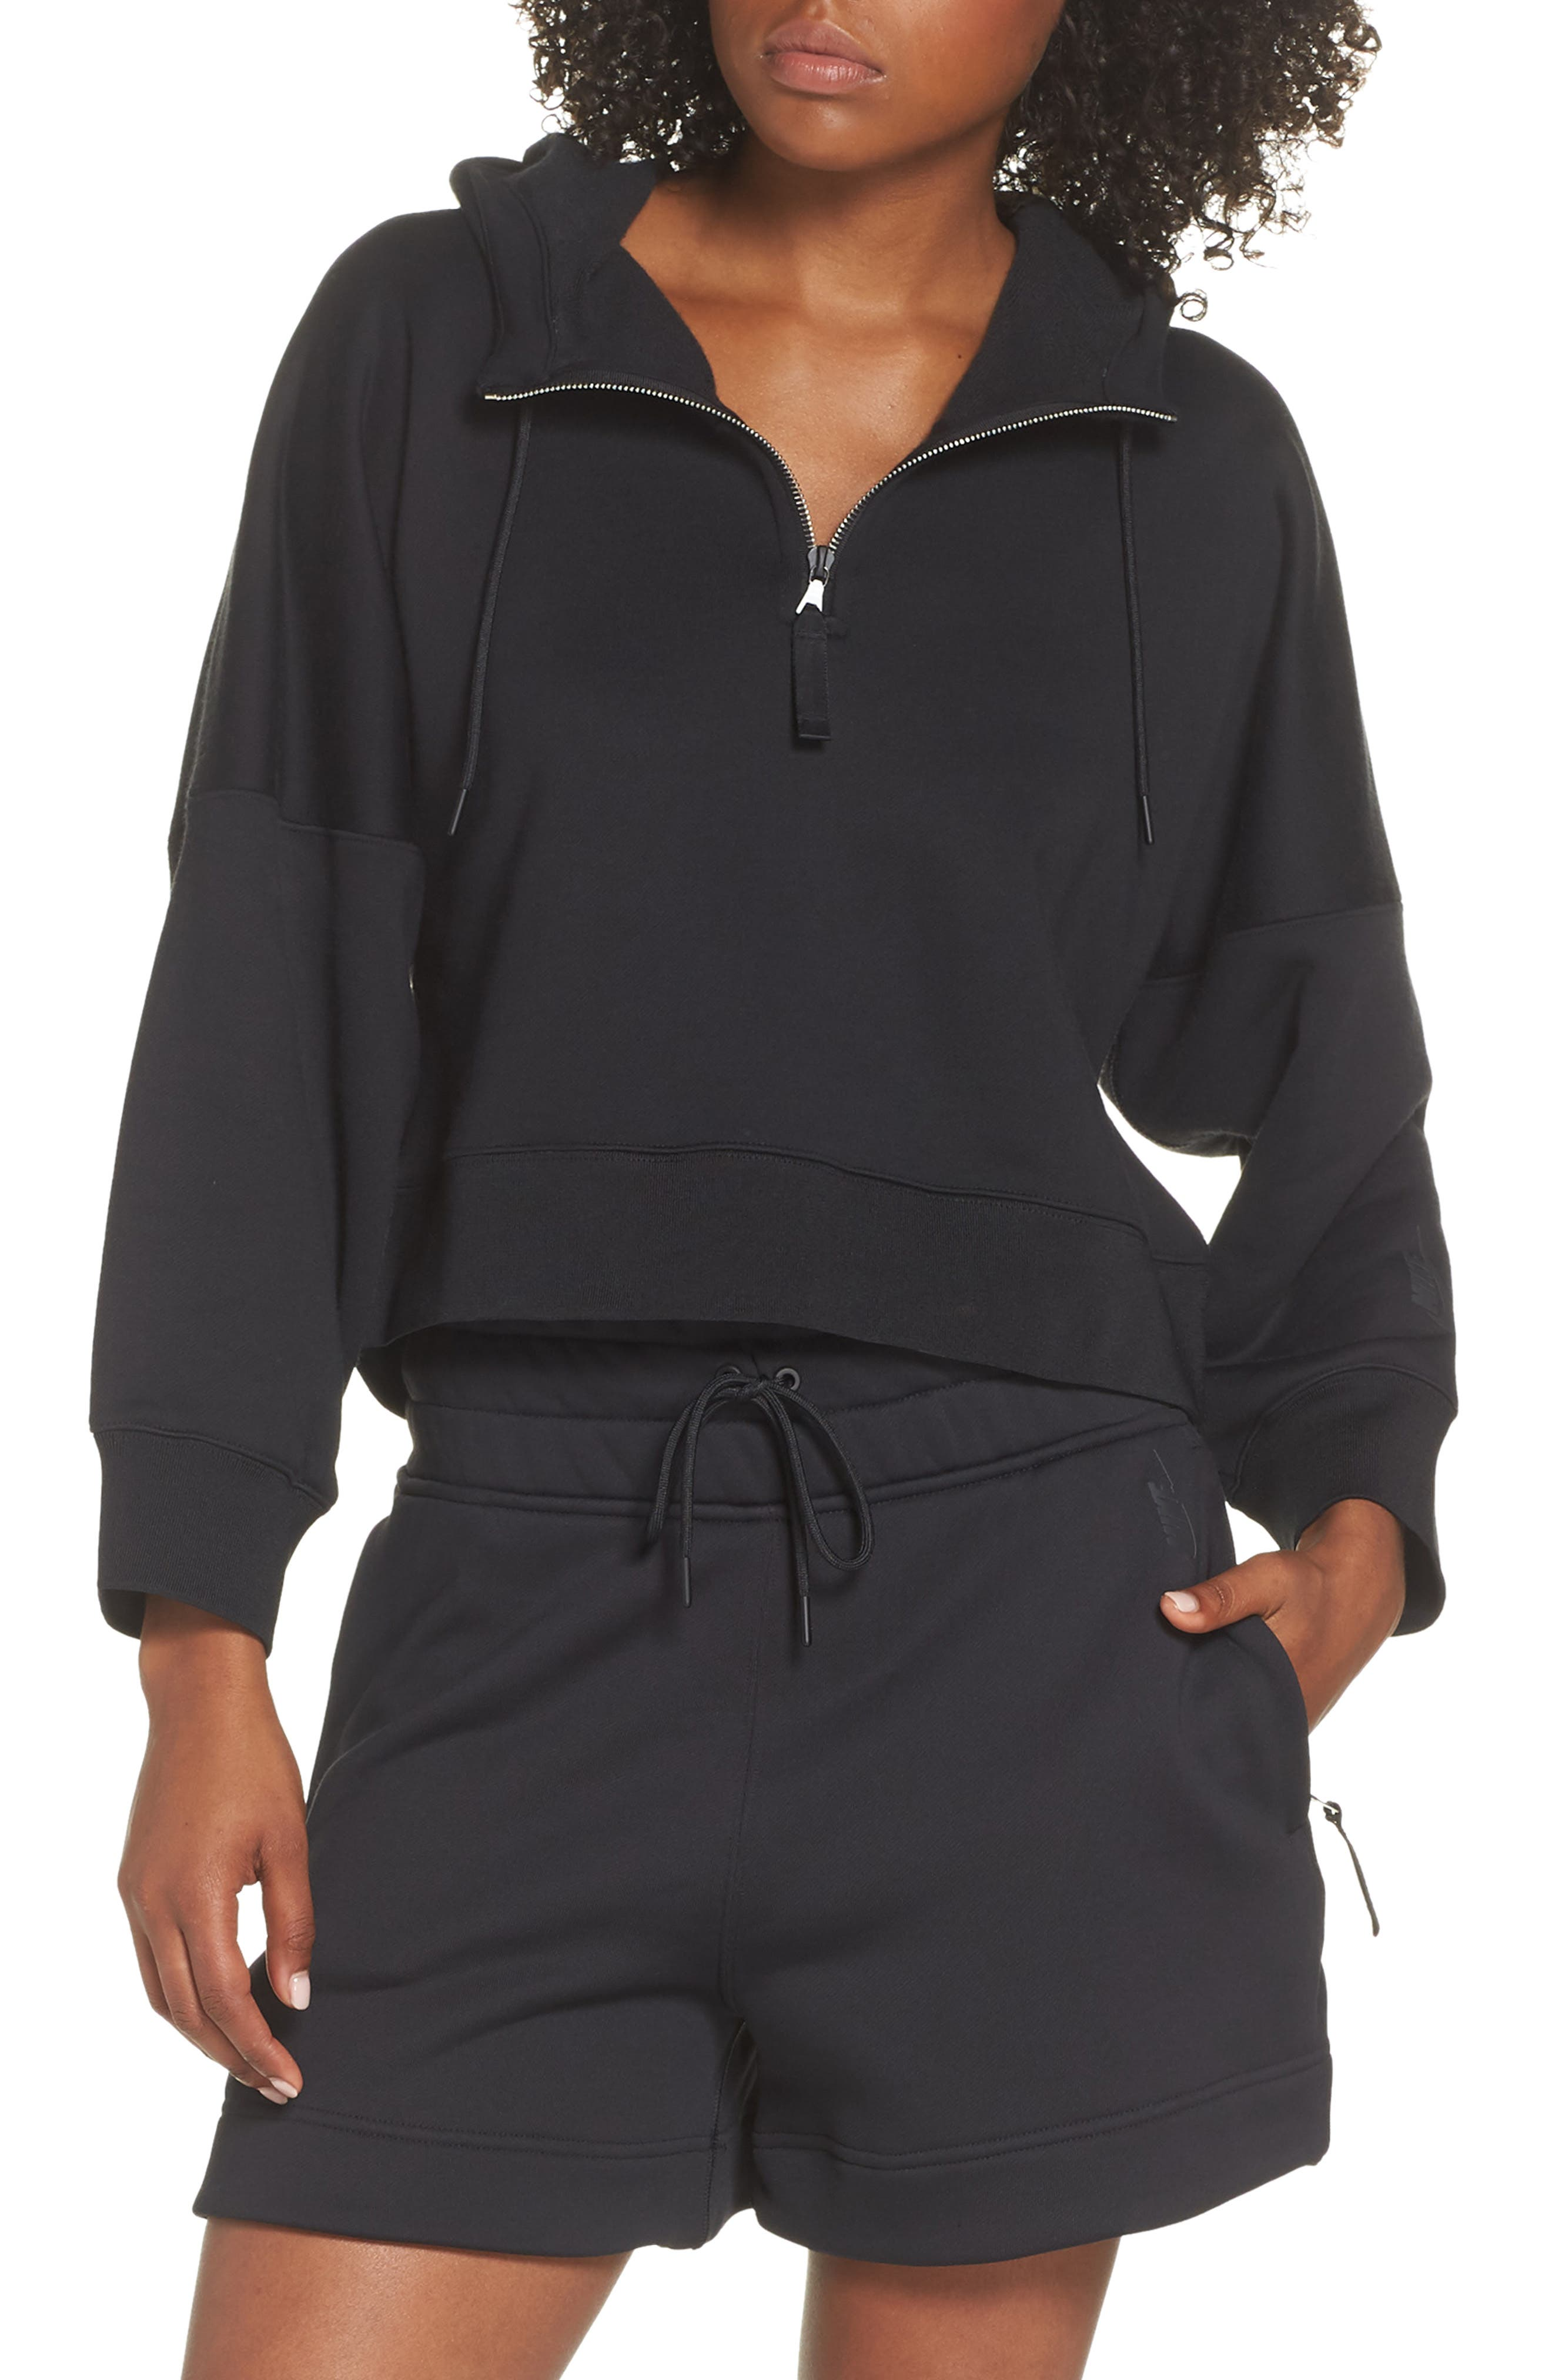 NikeLab Collection Women's Half Zip Fleece Hoodie,                         Main,                         color, BLACK/ BLACK